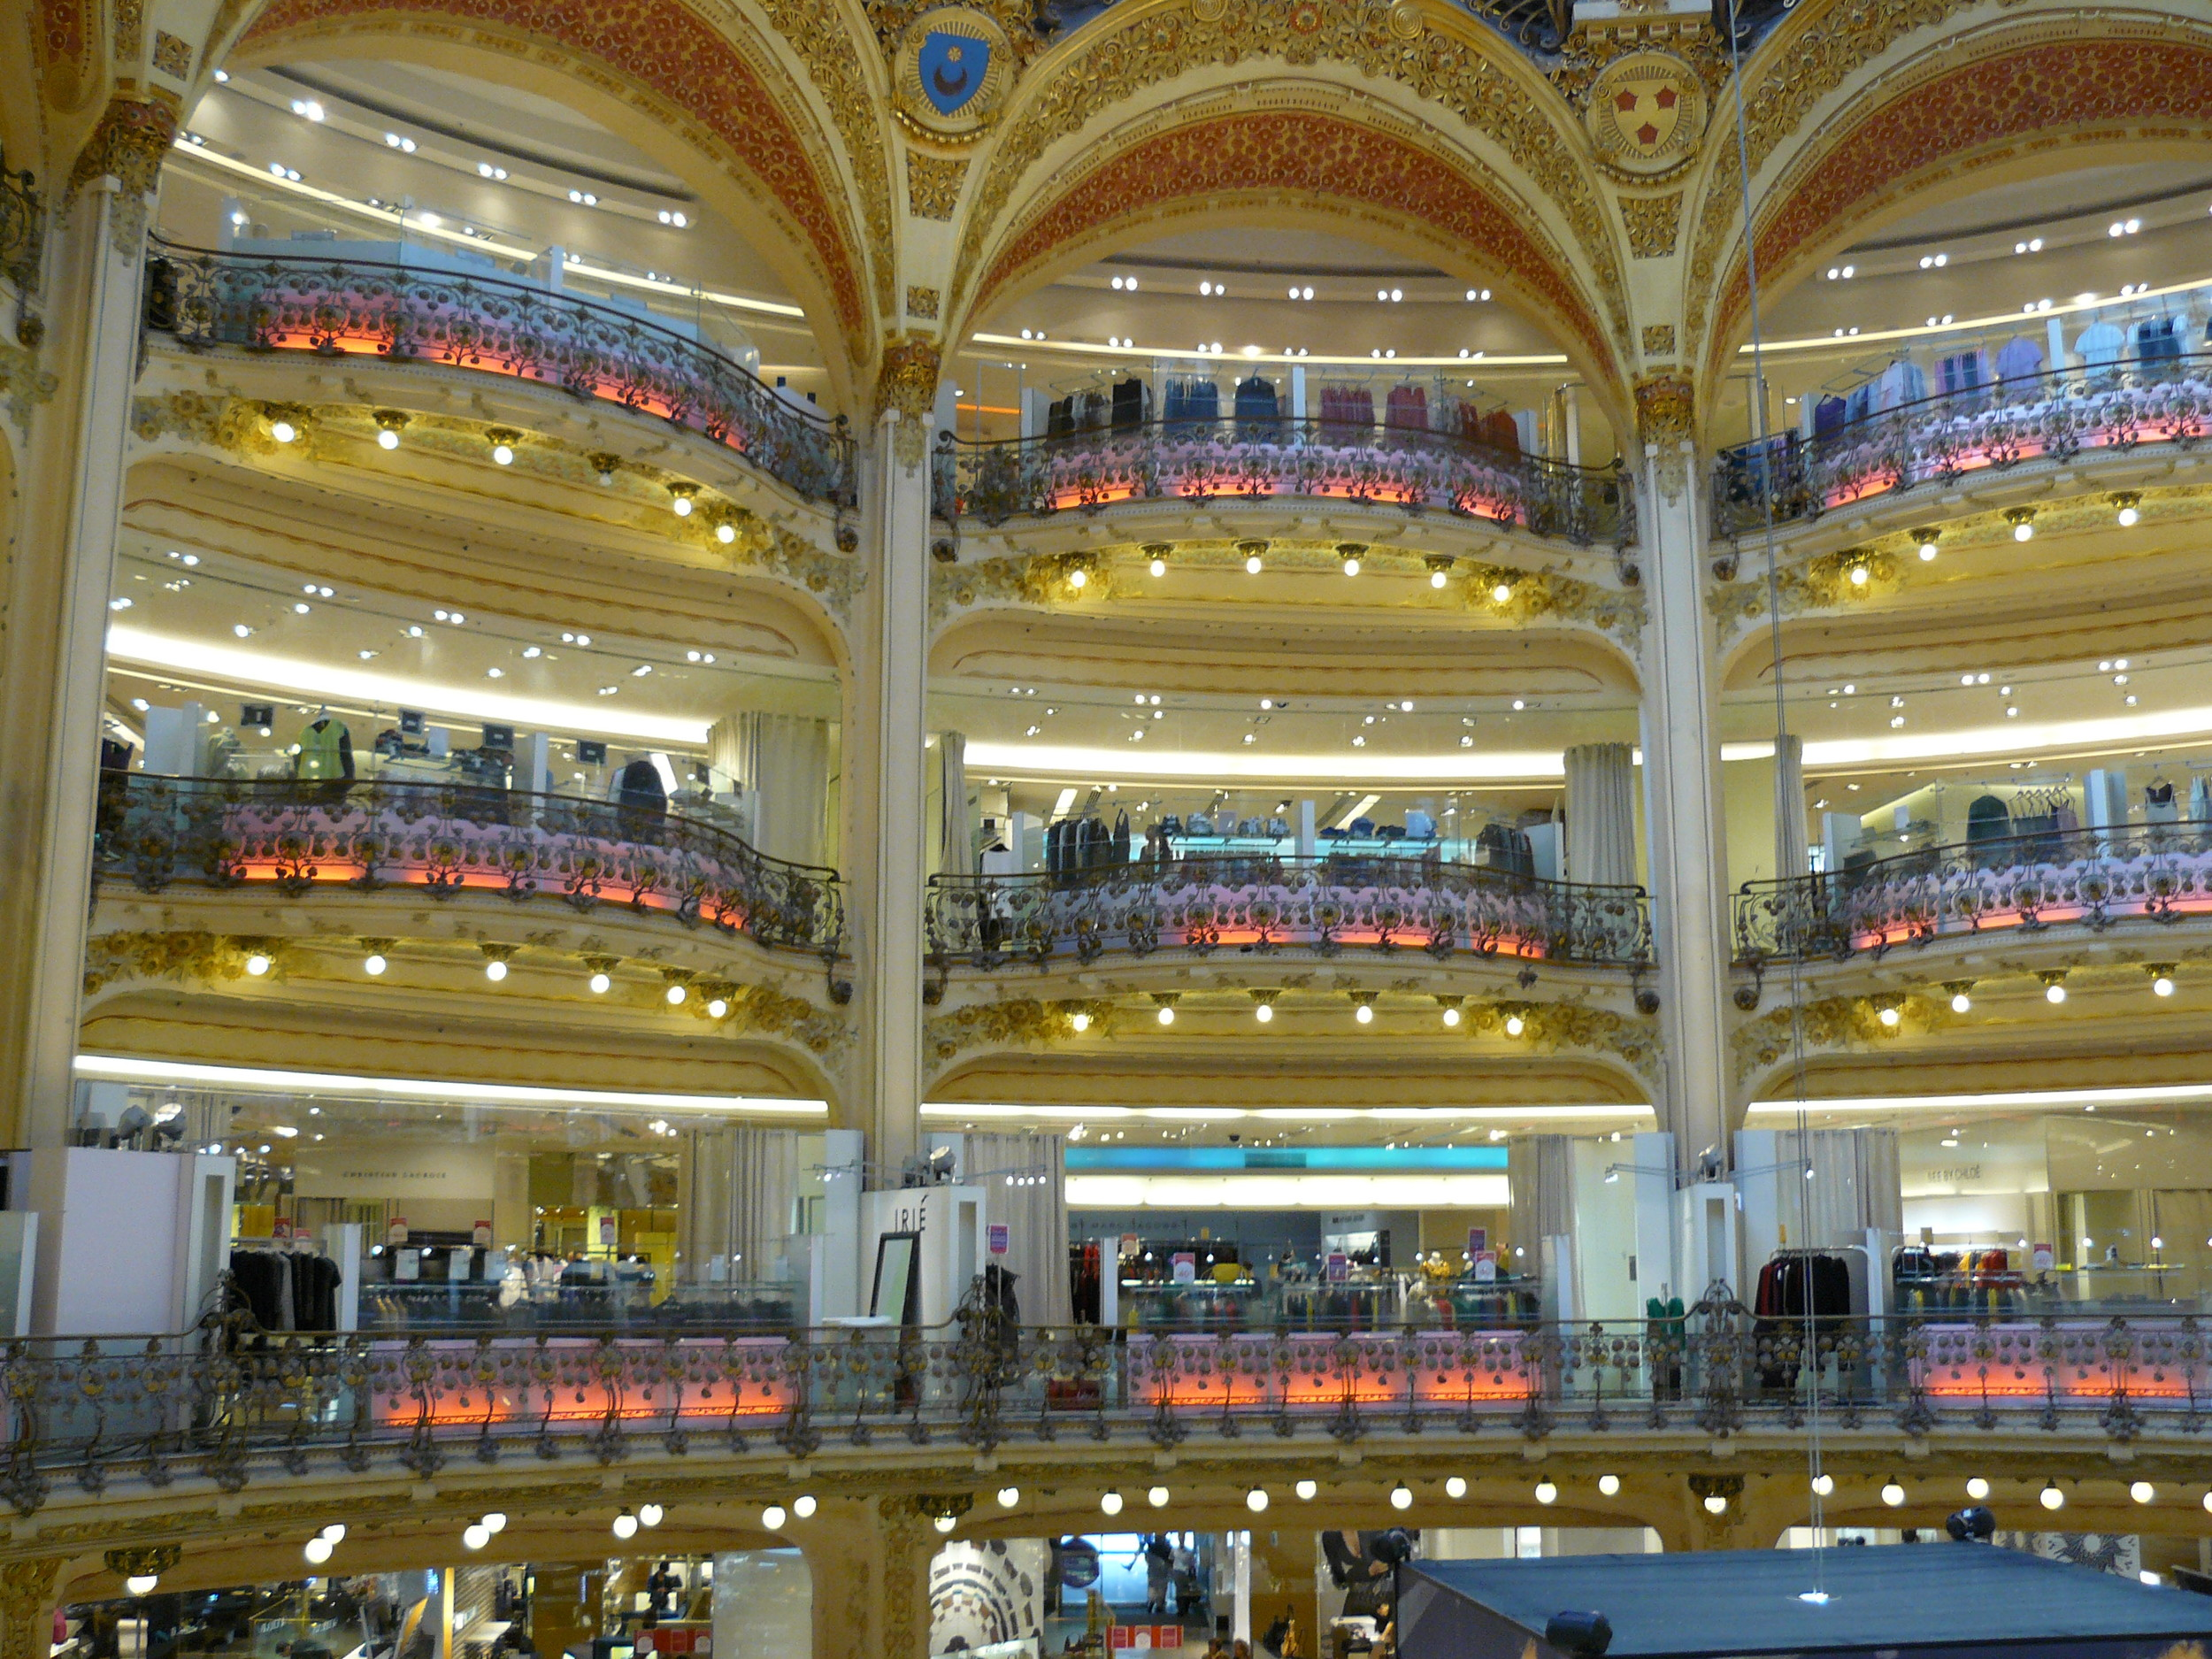 No! Not an opera house, but rather, a shopping mall!